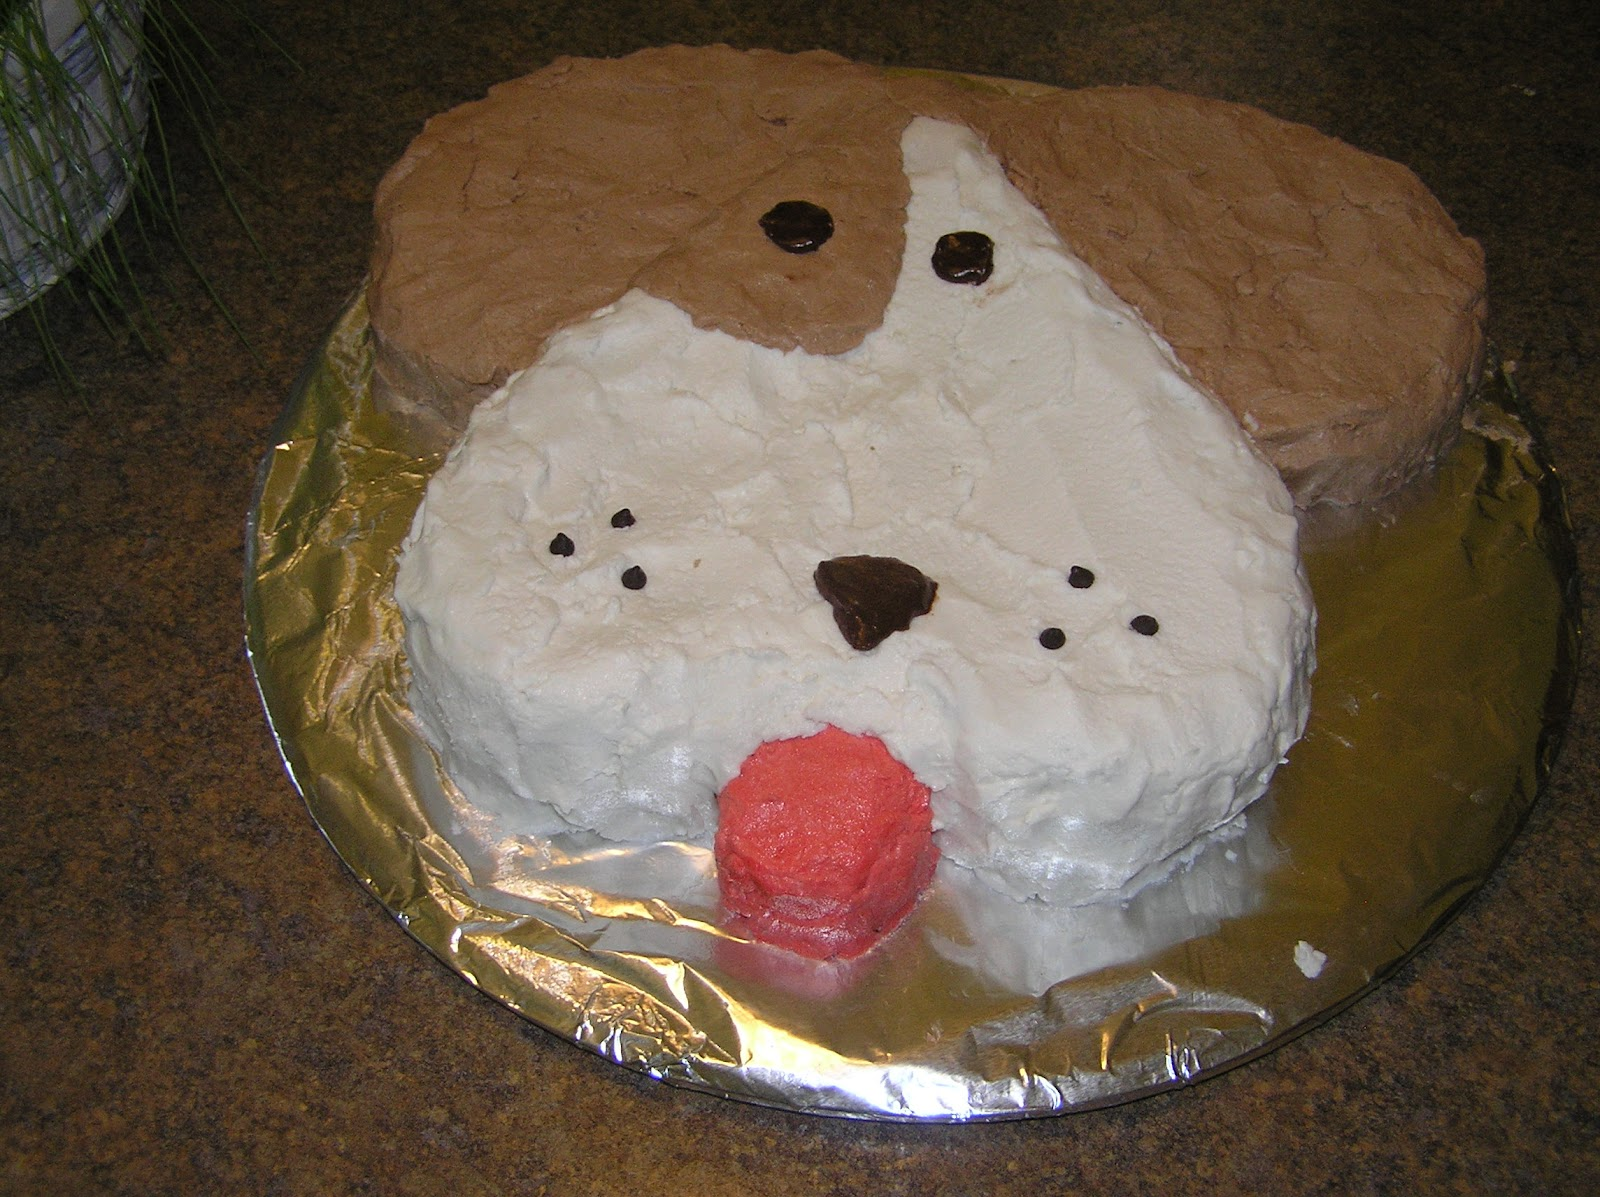 Yummy In My Fpies Tummy Chocolate Puppy Cake Fit For A